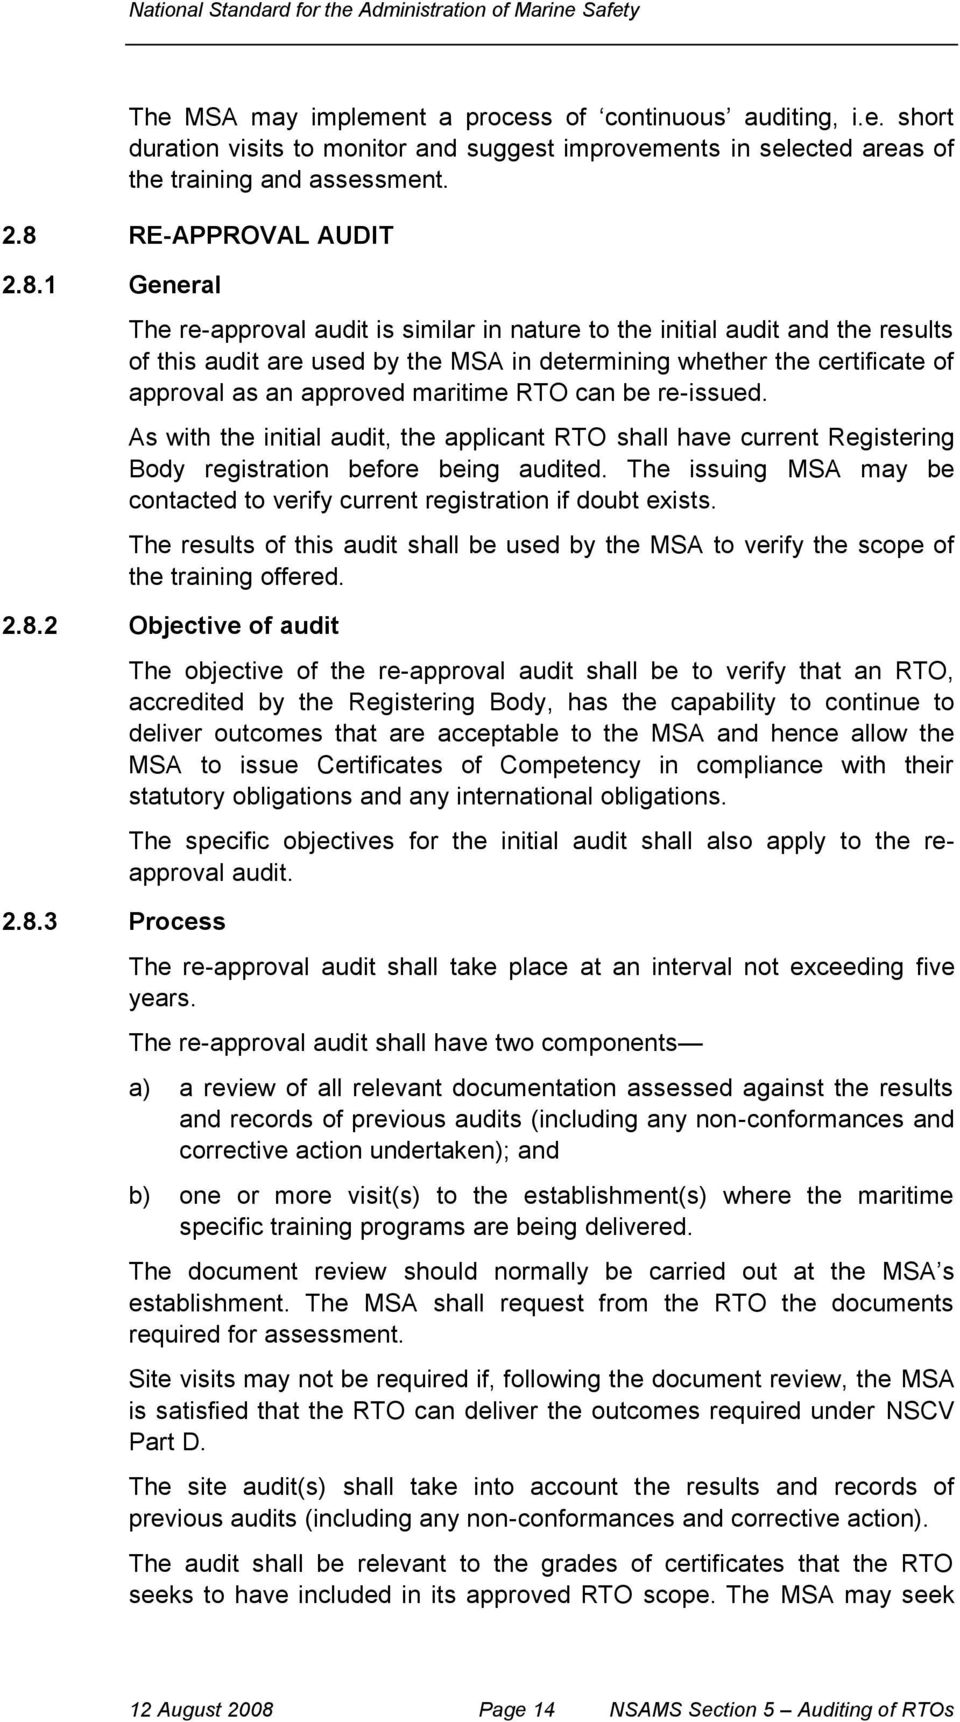 1 General The re-approval audit is similar in nature to the initial audit and the results of this audit are used by the MSA in determining whether the certificate of approval as an approved maritime